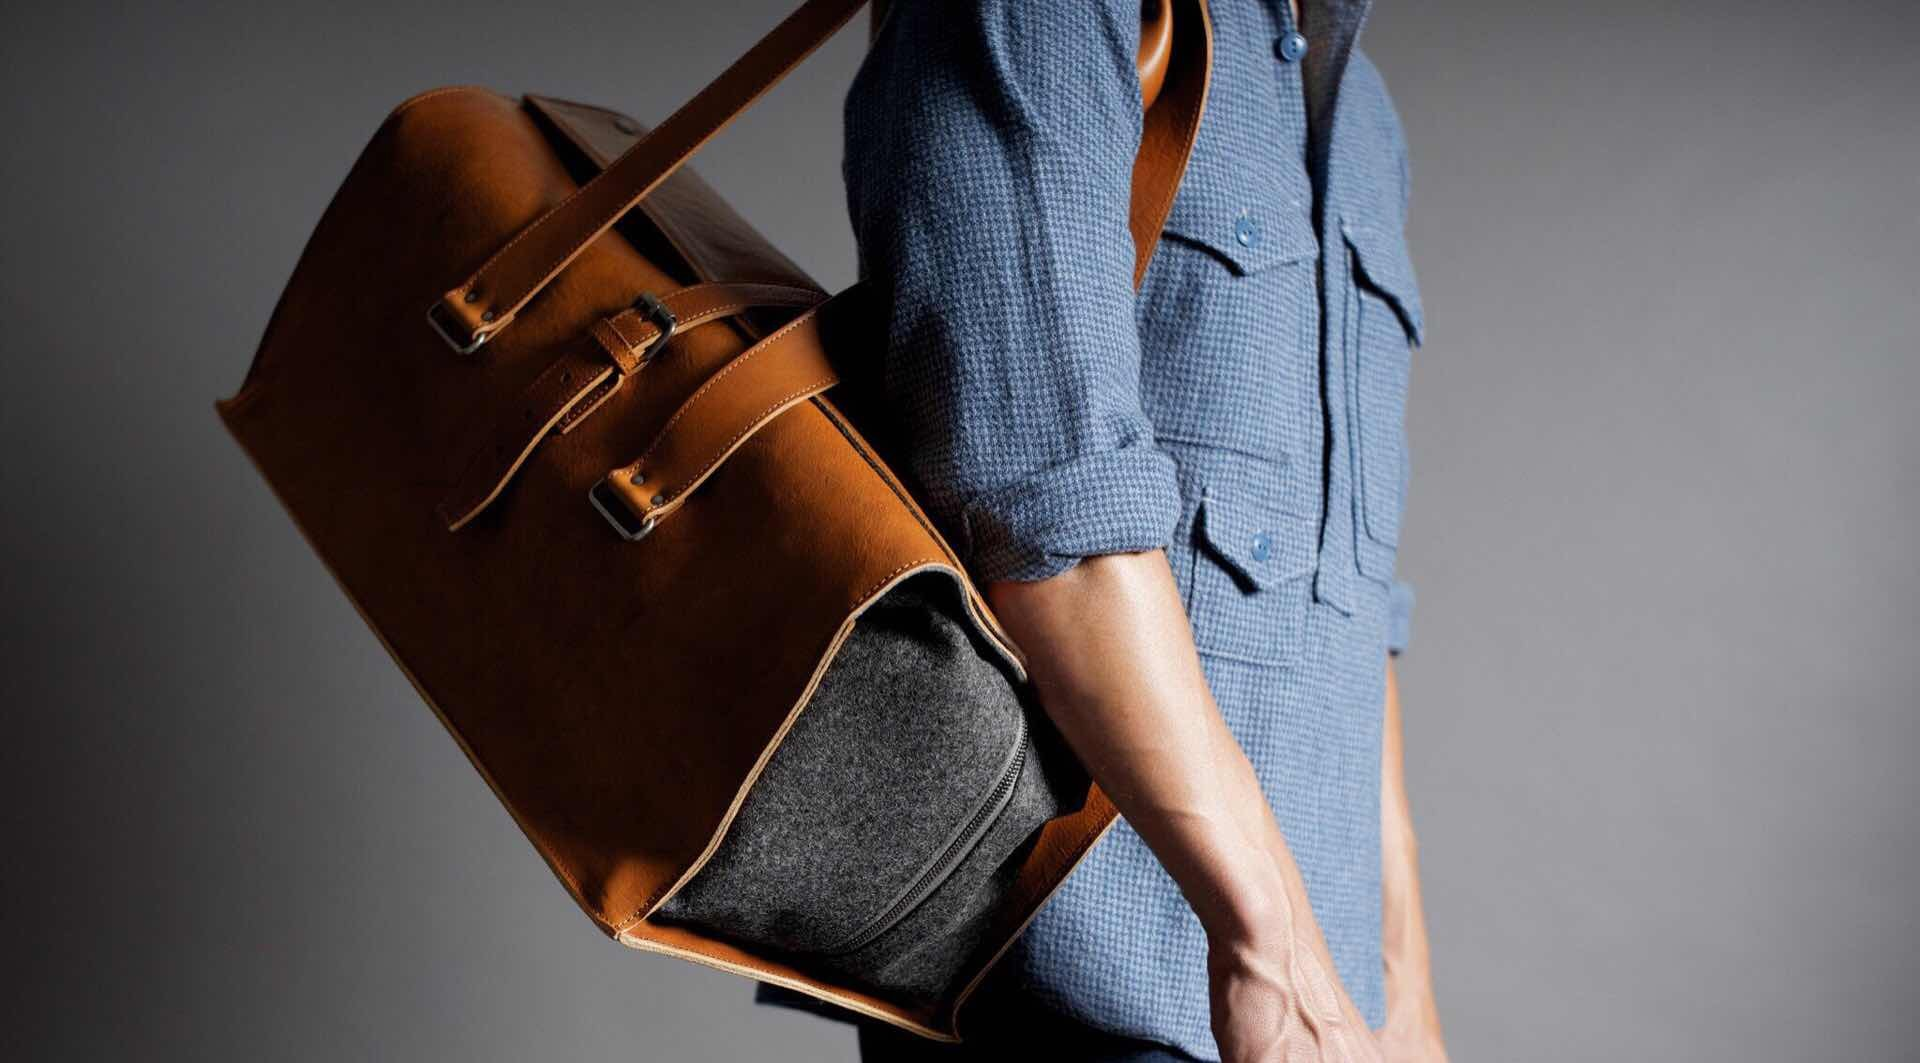 hard-graft-1st-edition-travel-bag-2